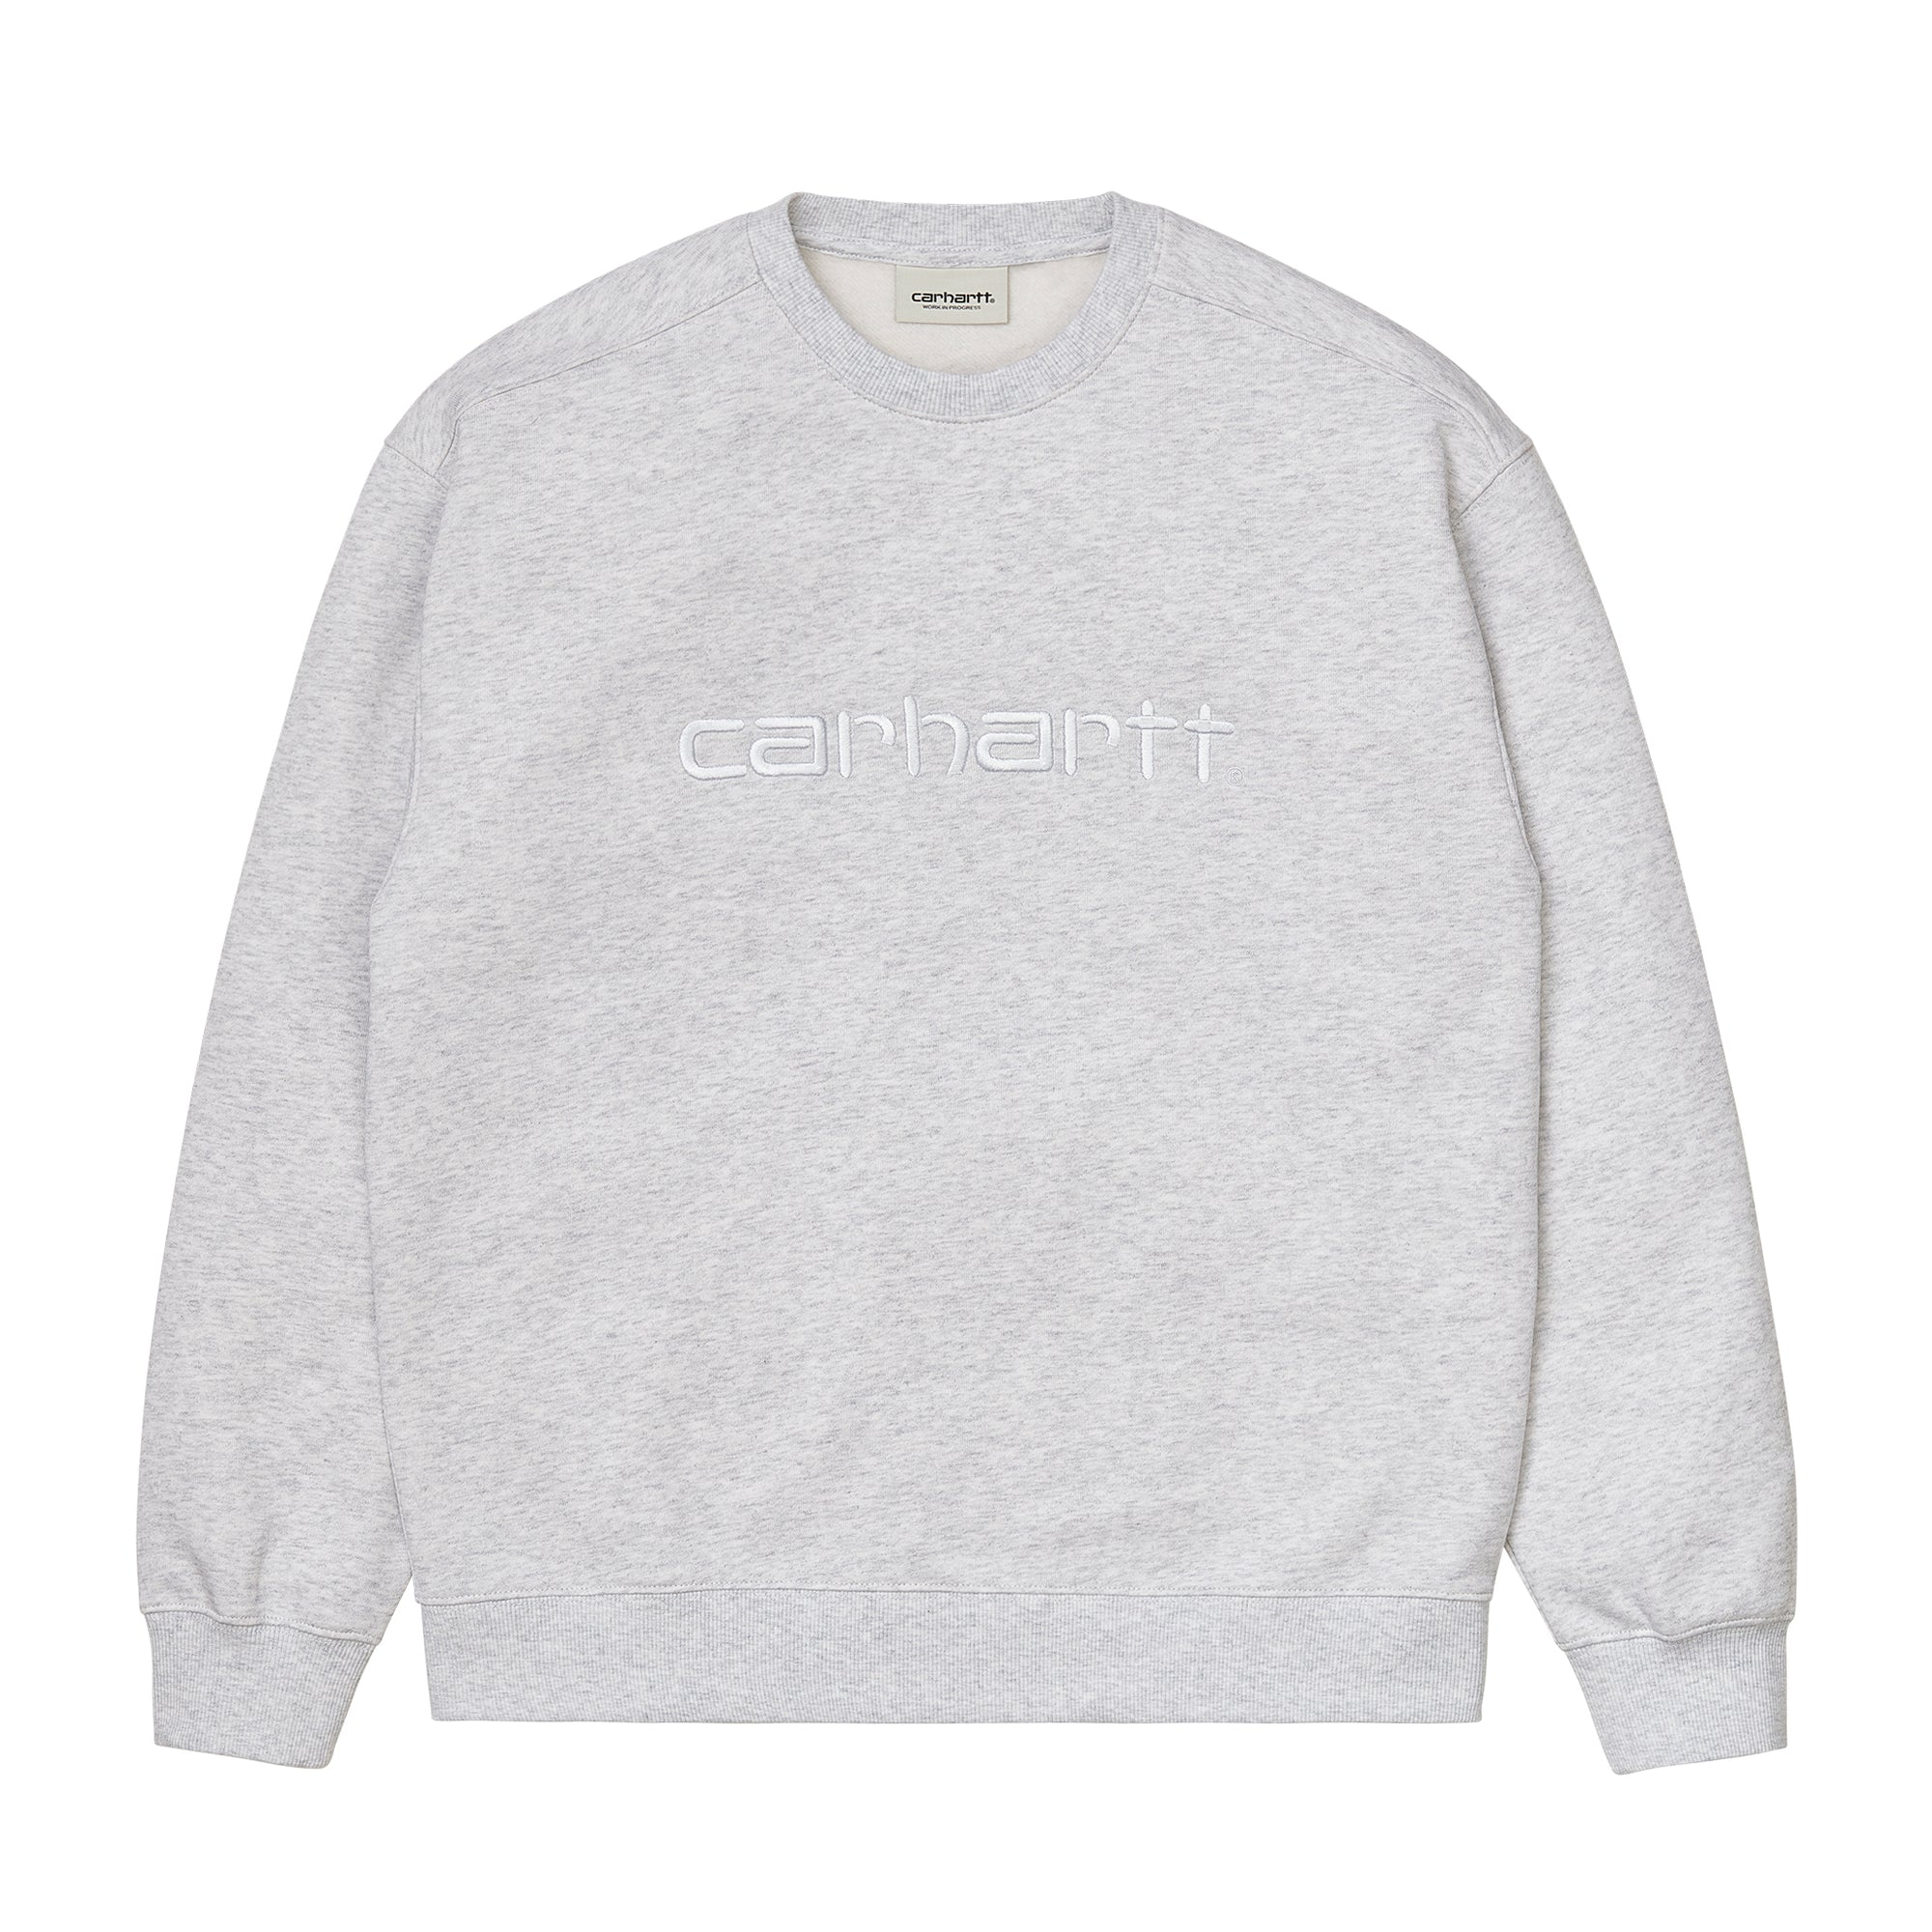 Carhartt WIP Womens Carhartt Sweat: Ash Heather / White - The Union Project